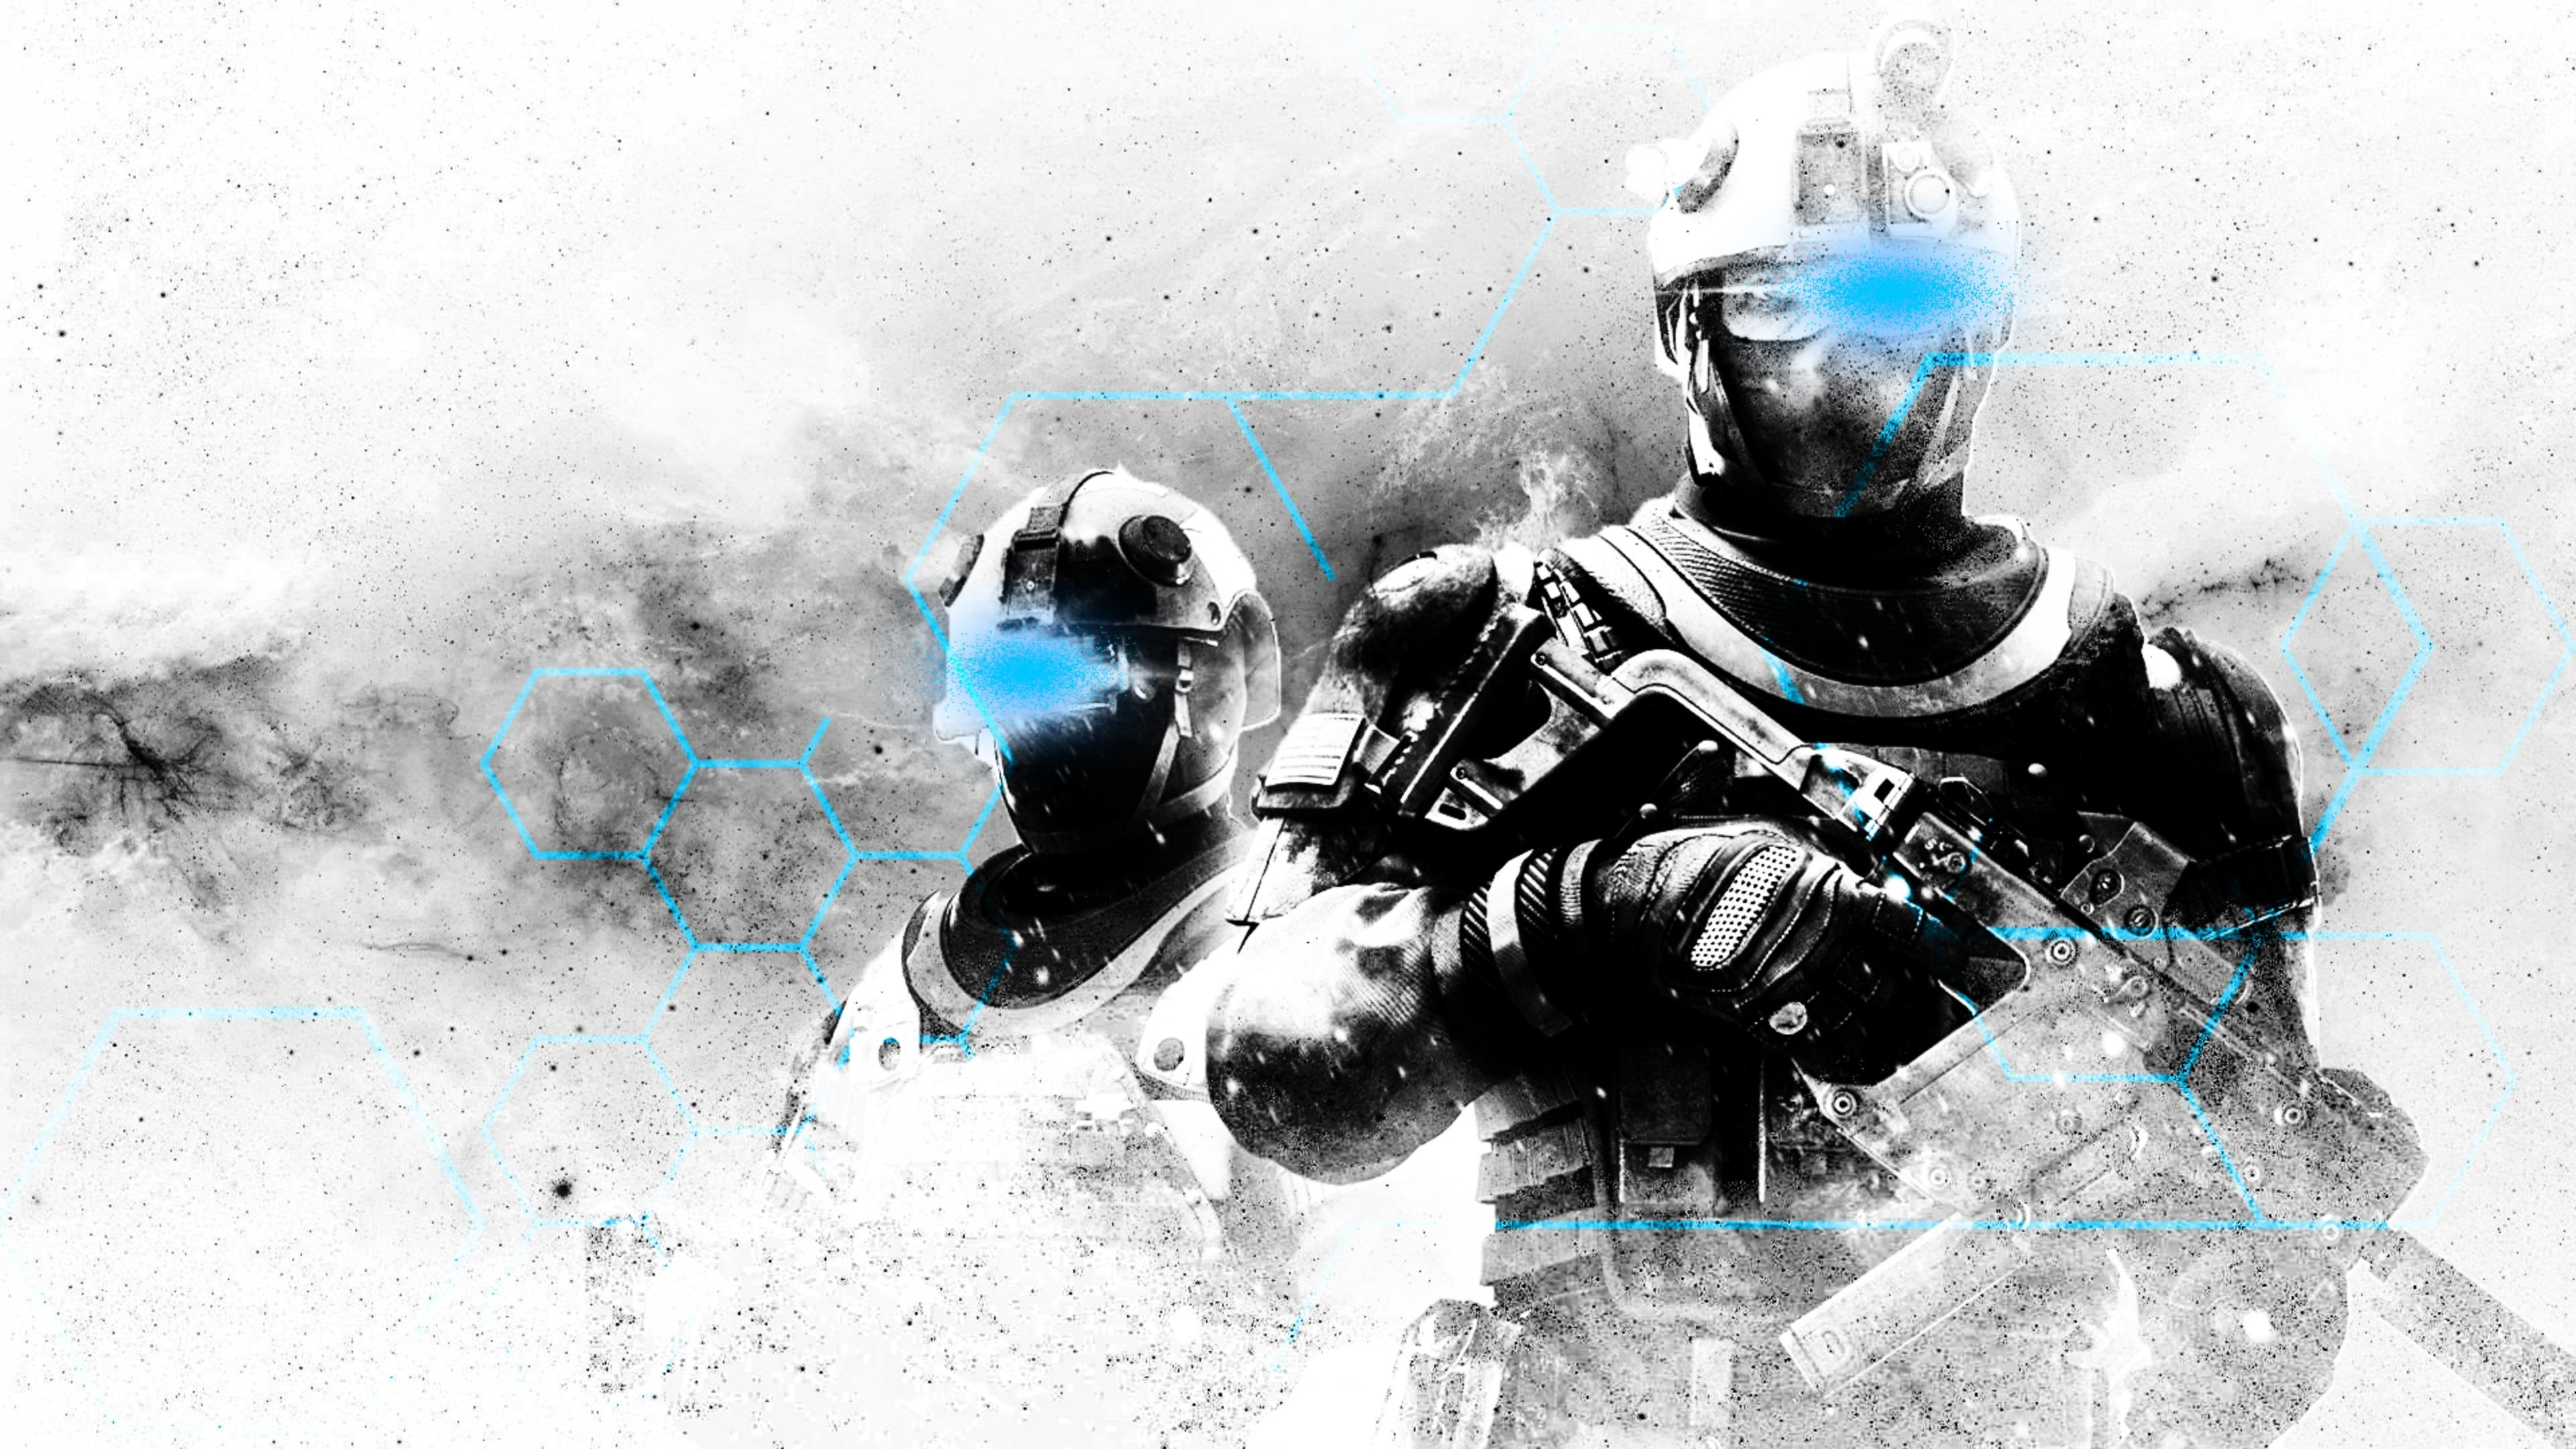 Res: 3840x2160, Most Popular Tom Clancy's Ghost Recon 4K Wallpaper